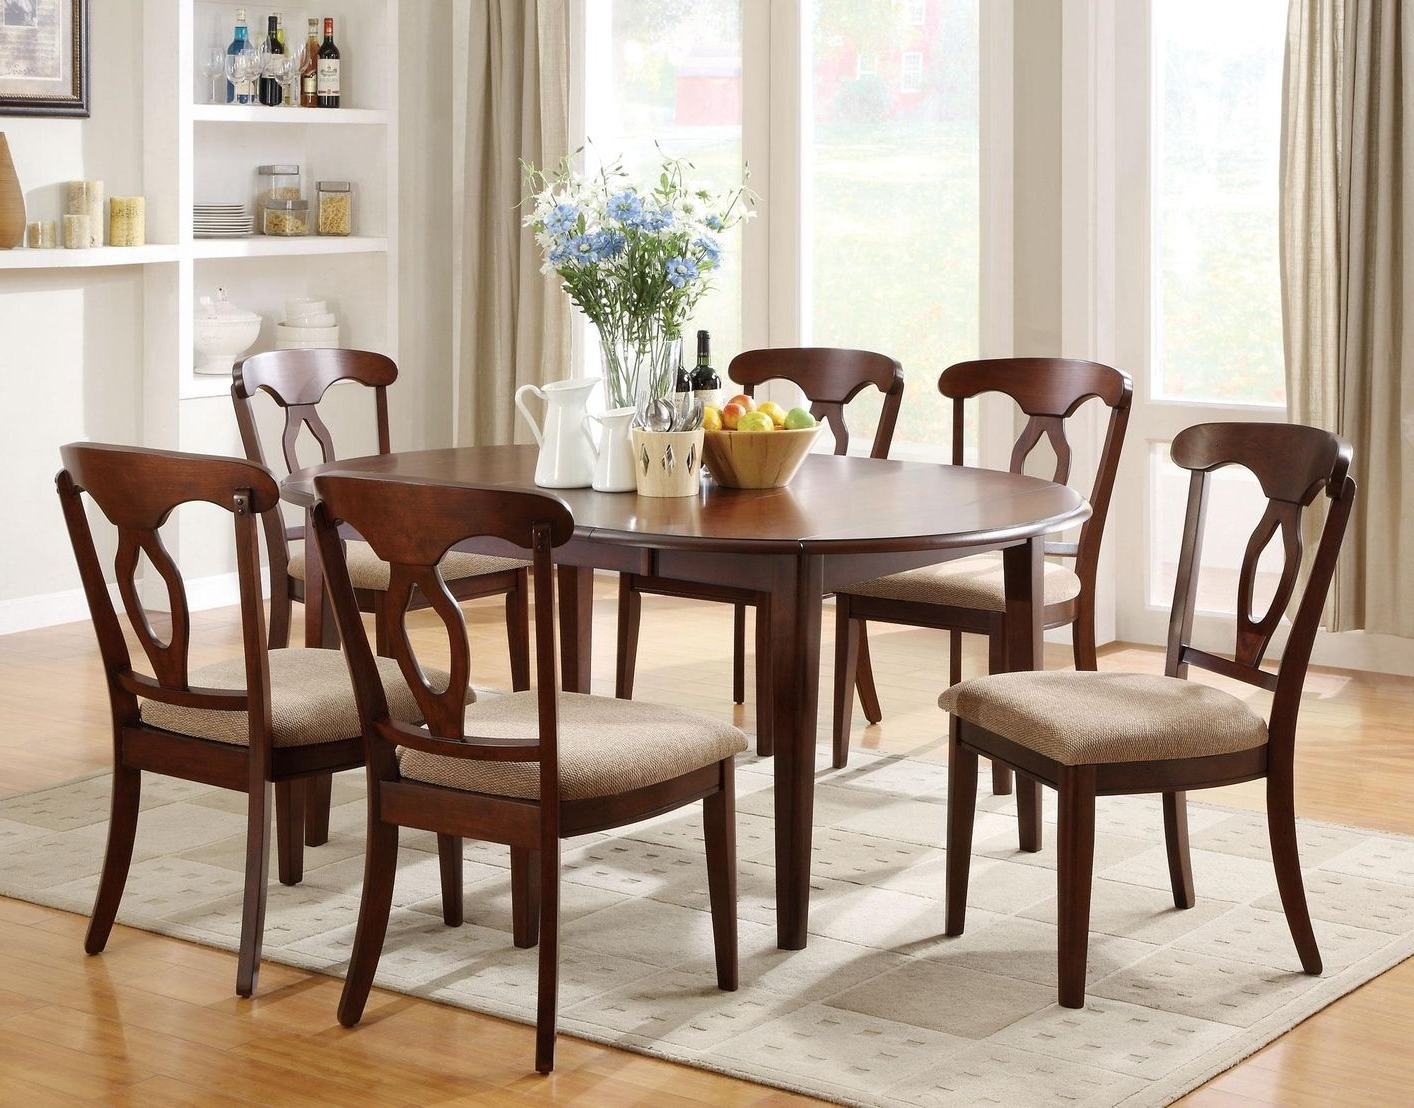 Latest Wooden Dining Room Chairs Decor — Bluehawkboosters Home Design With Regard To Dark Wood Dining Tables And Chairs (View 18 of 25)